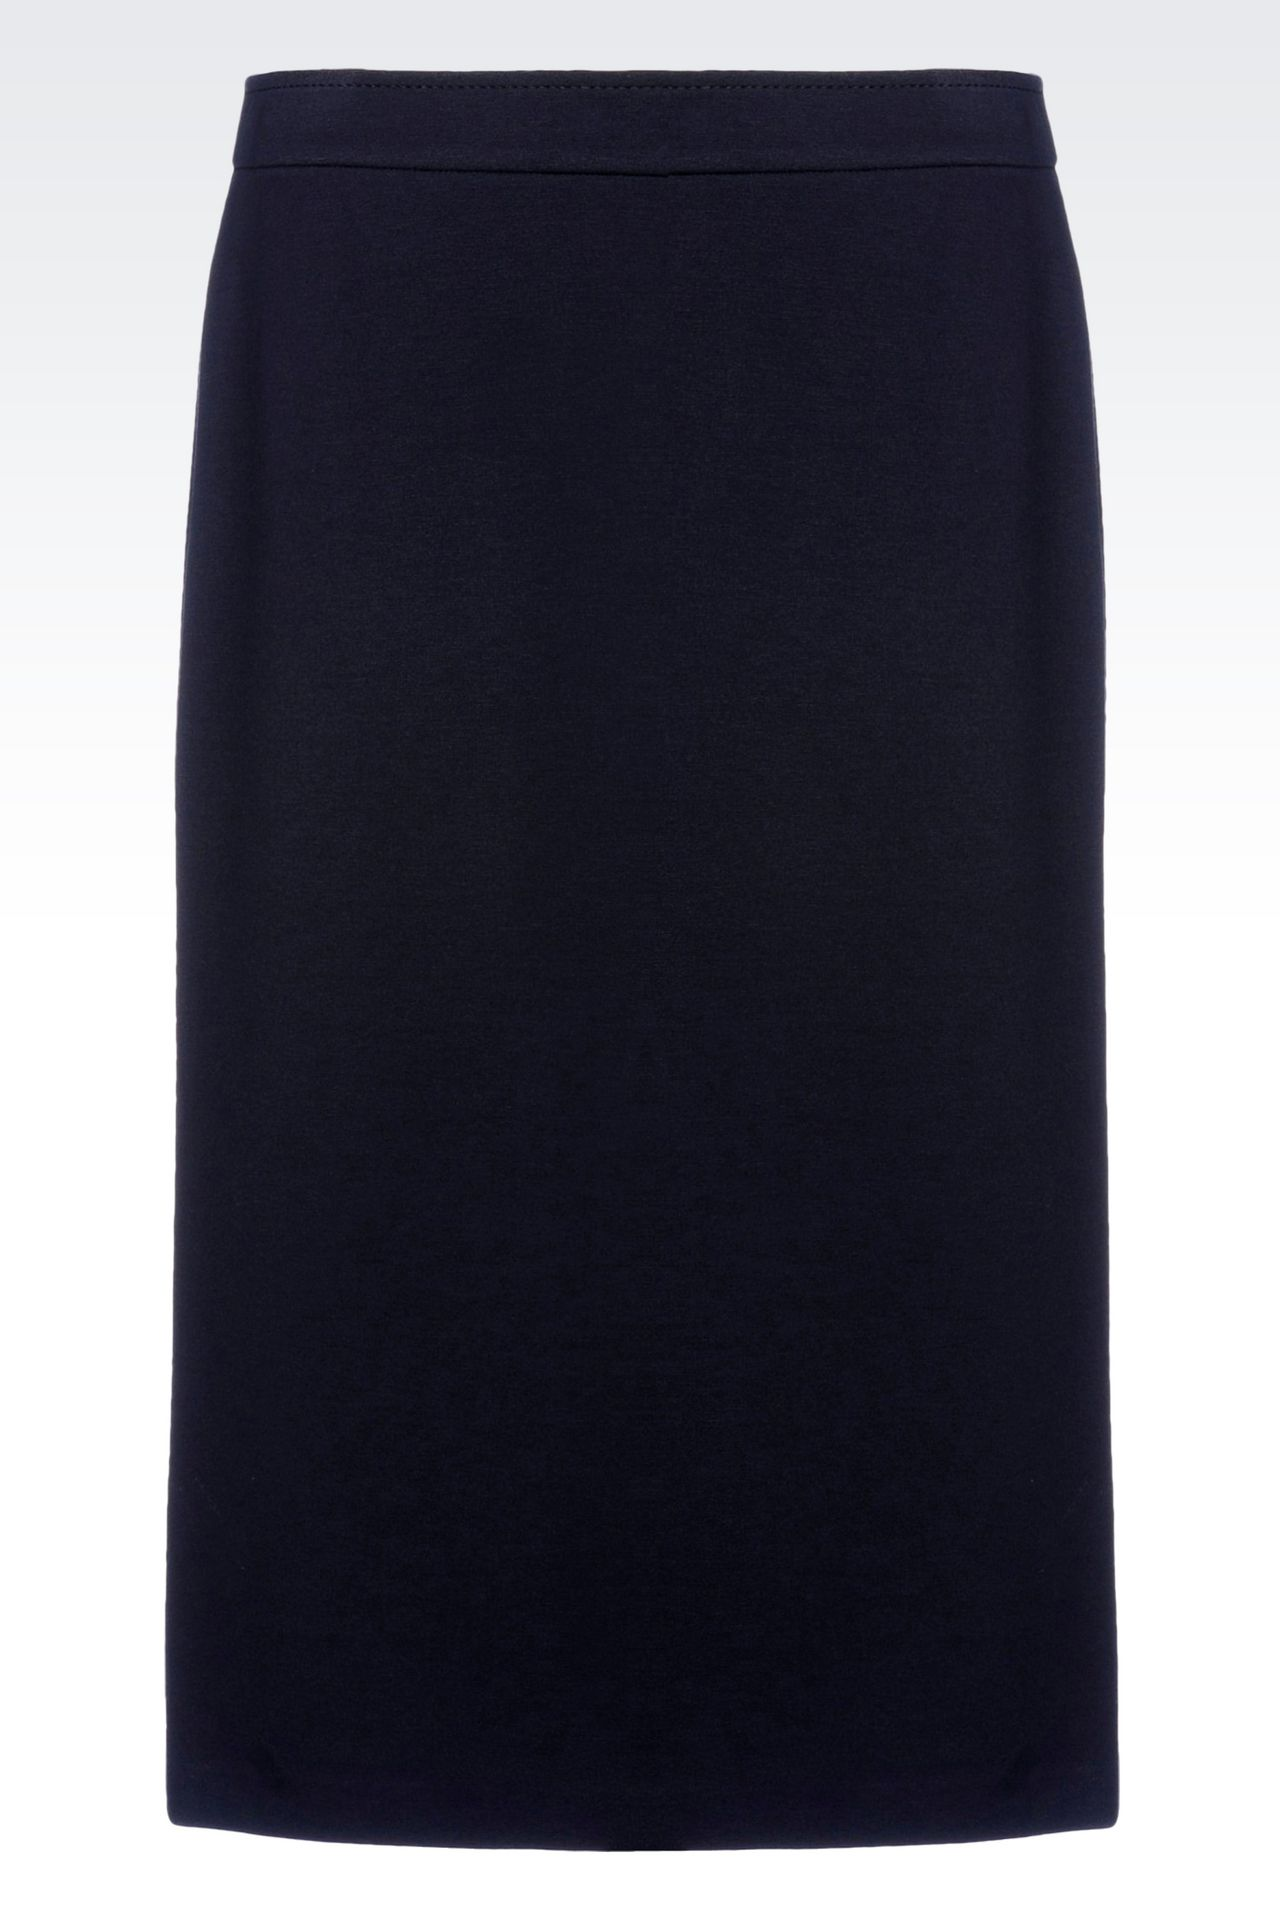 PENCIL SKIRT IN VISCOSE BLEND: Mini skirts Women by Armani - 0